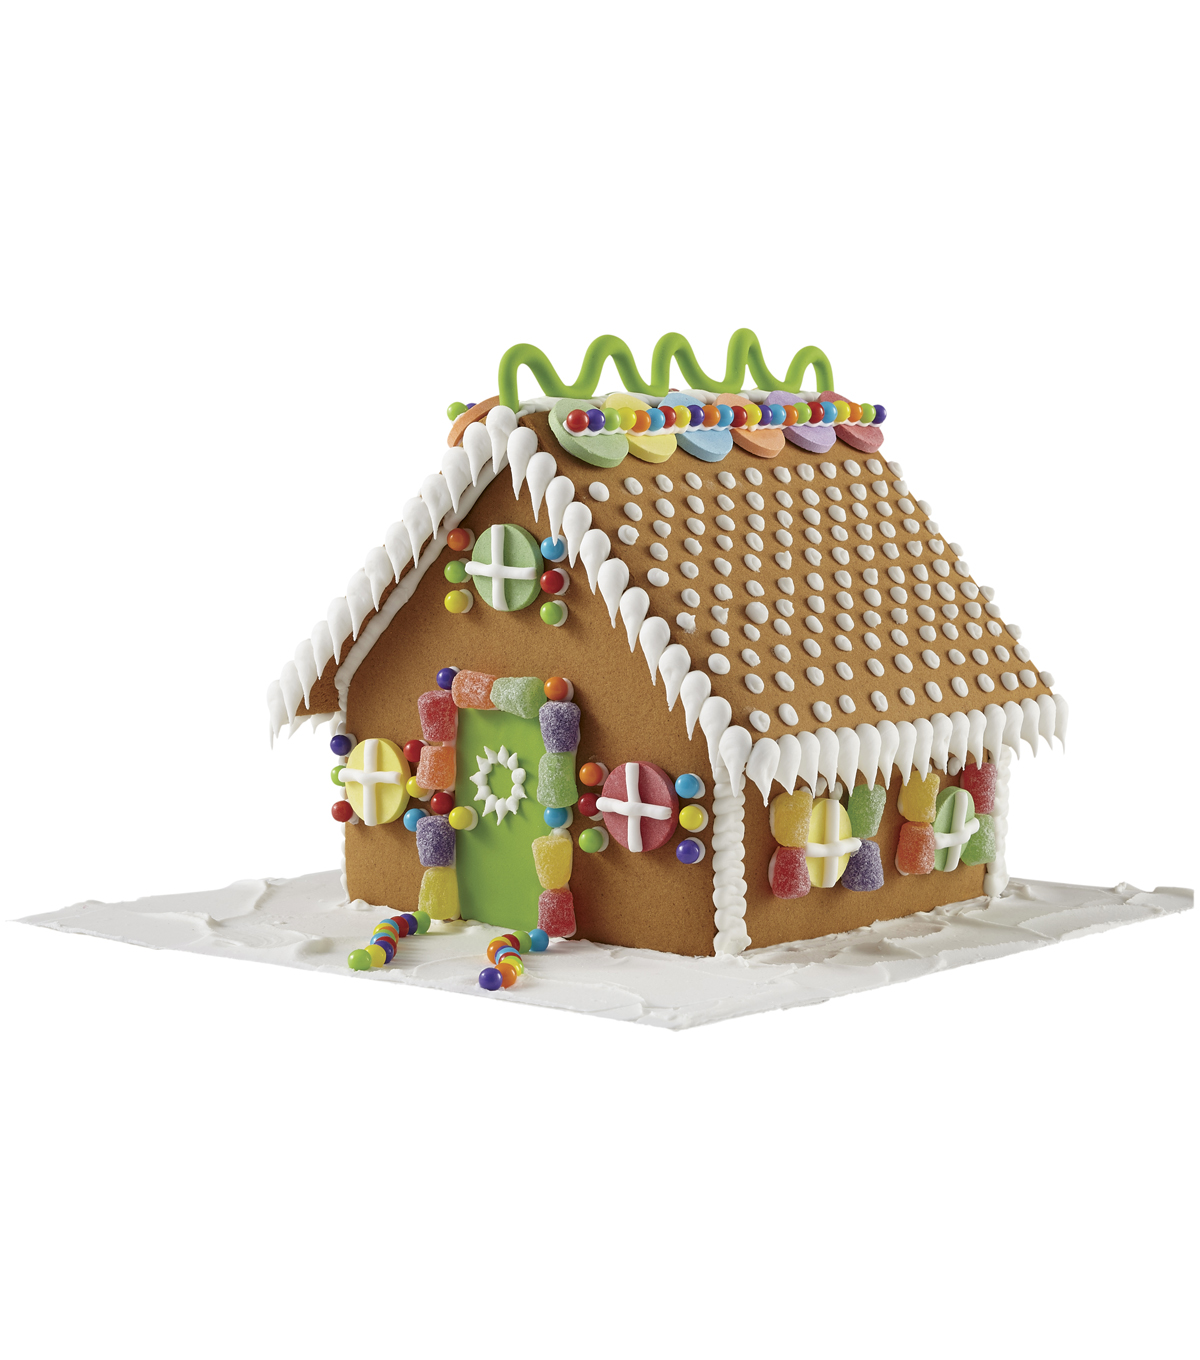 Wilton Pre-Baked Gingerbread House Decorating Kit